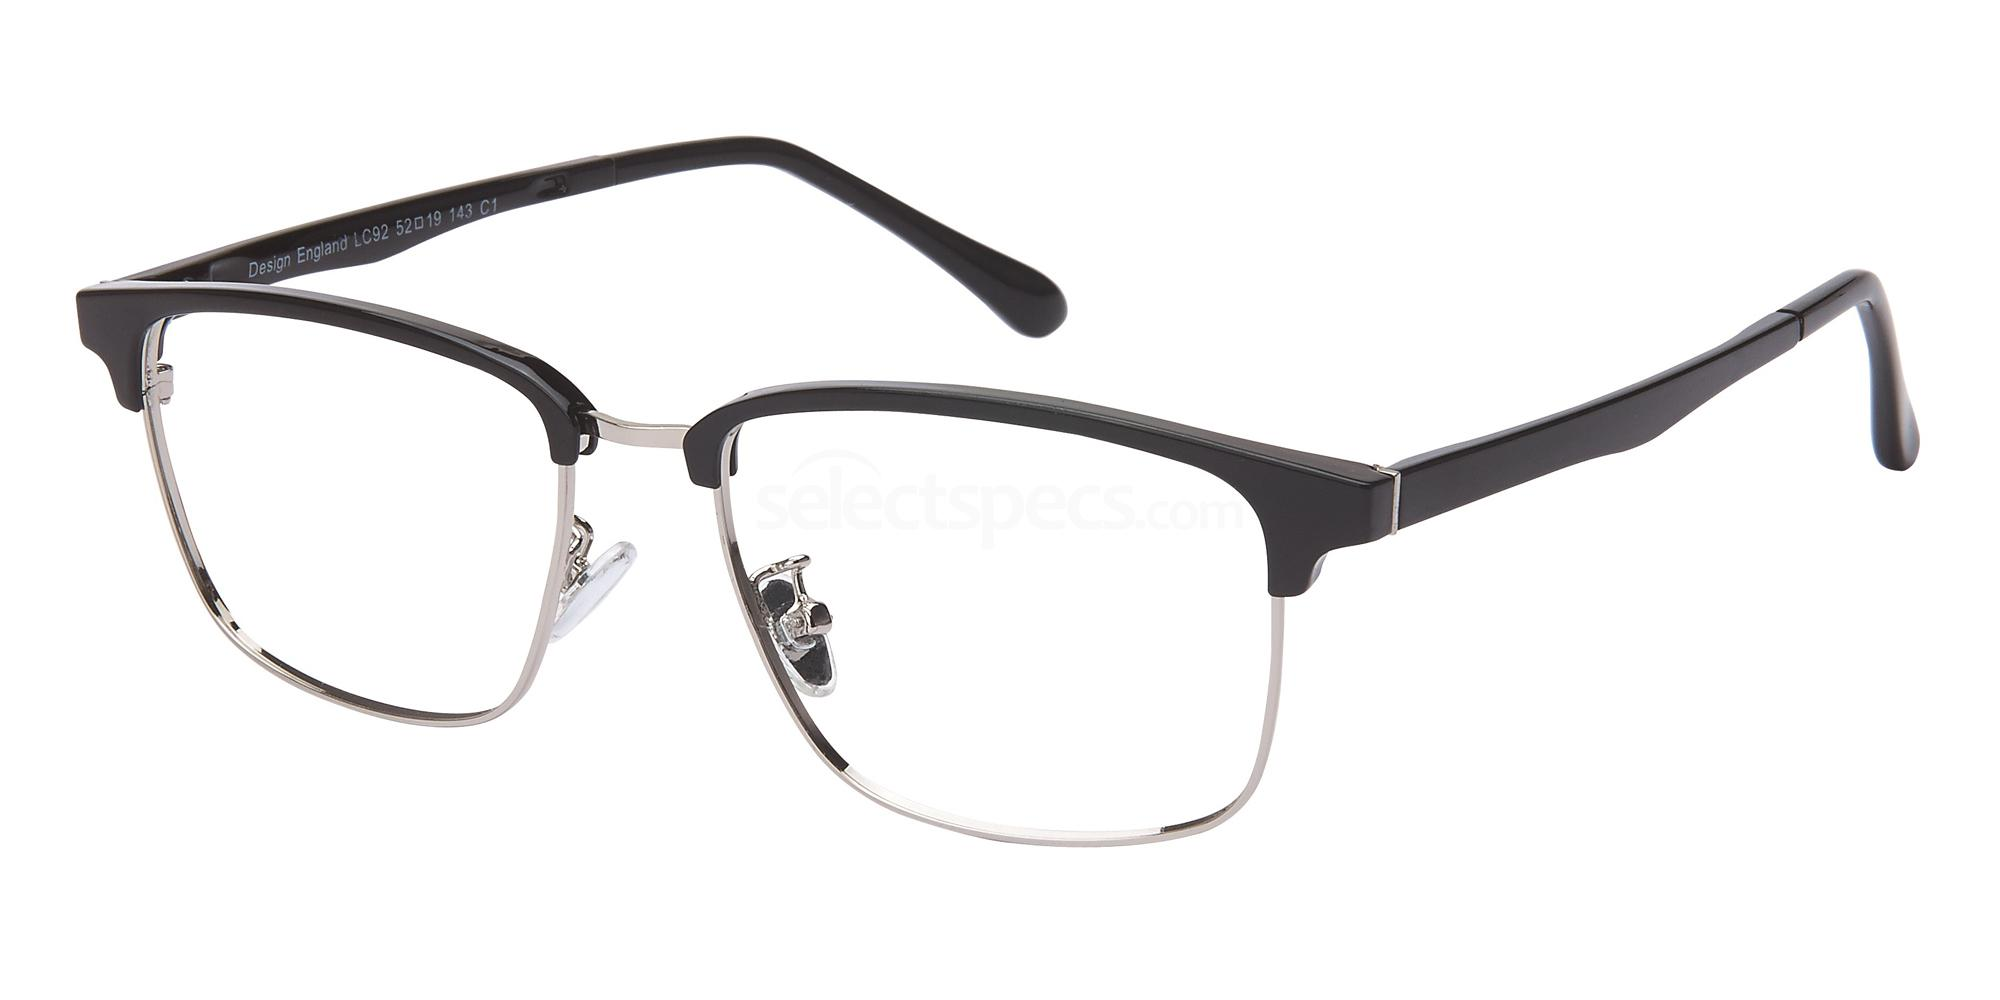 C1 LC92 - with Clip On Glasses, London Club